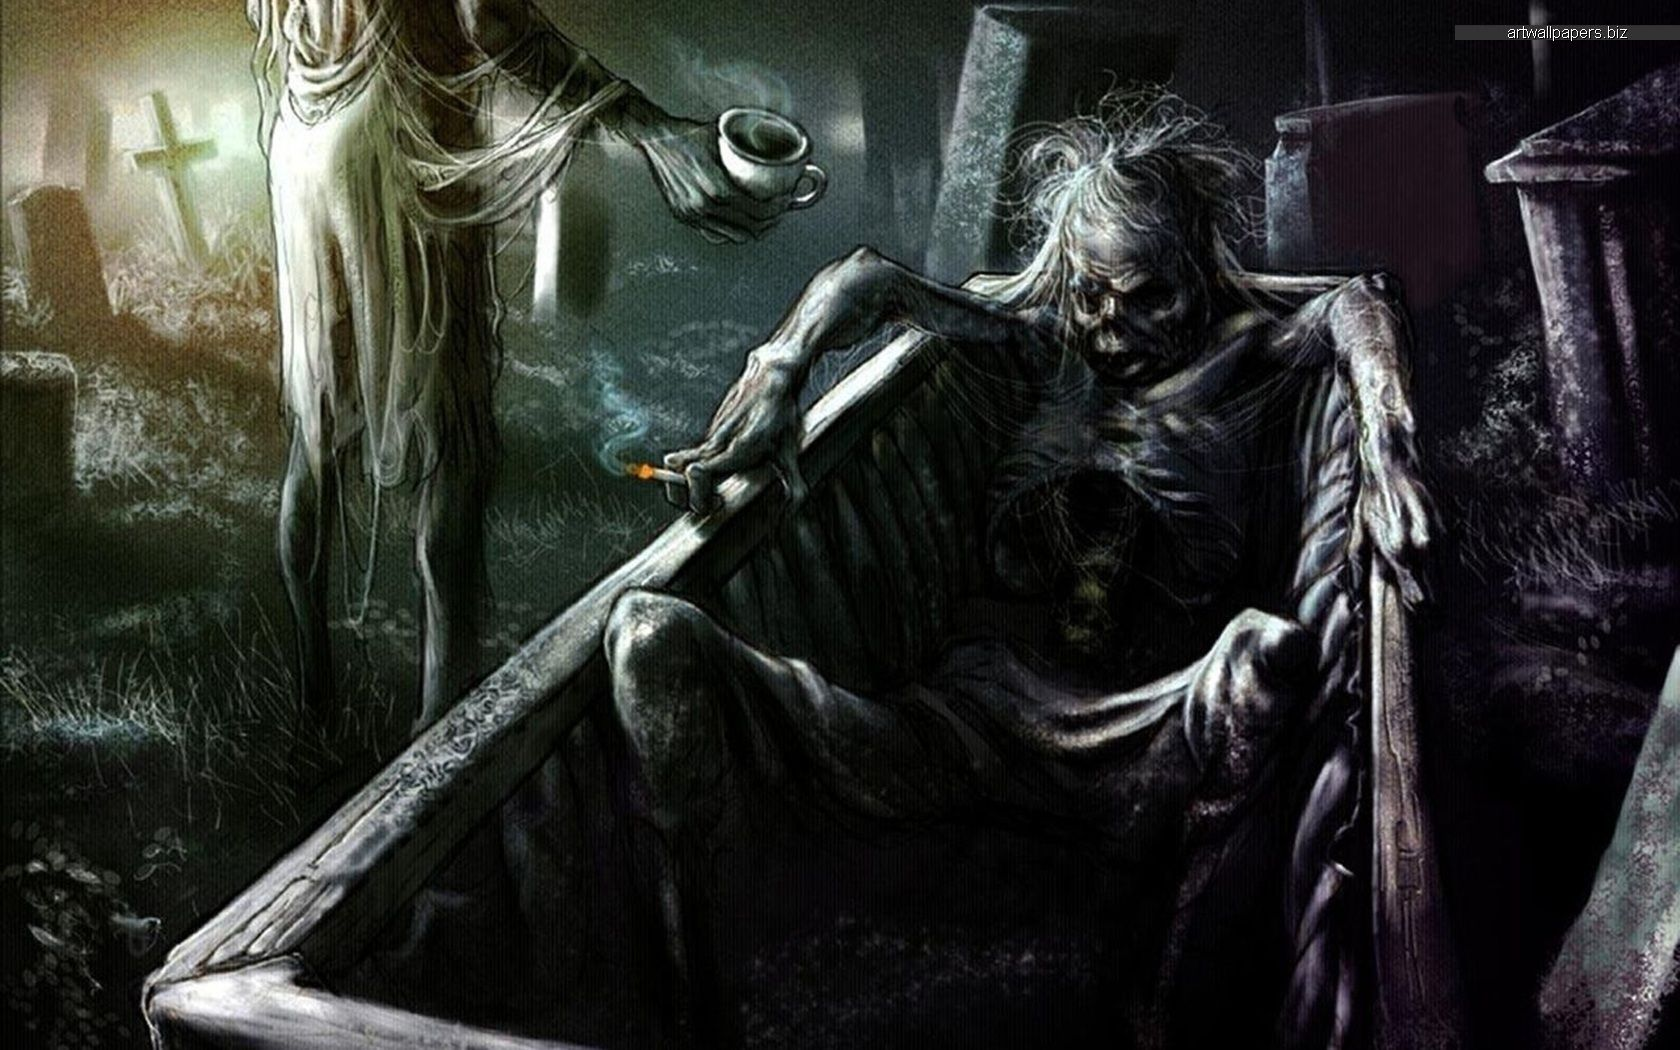 Dark Horror Wallpaper Background Gothic fantasy art